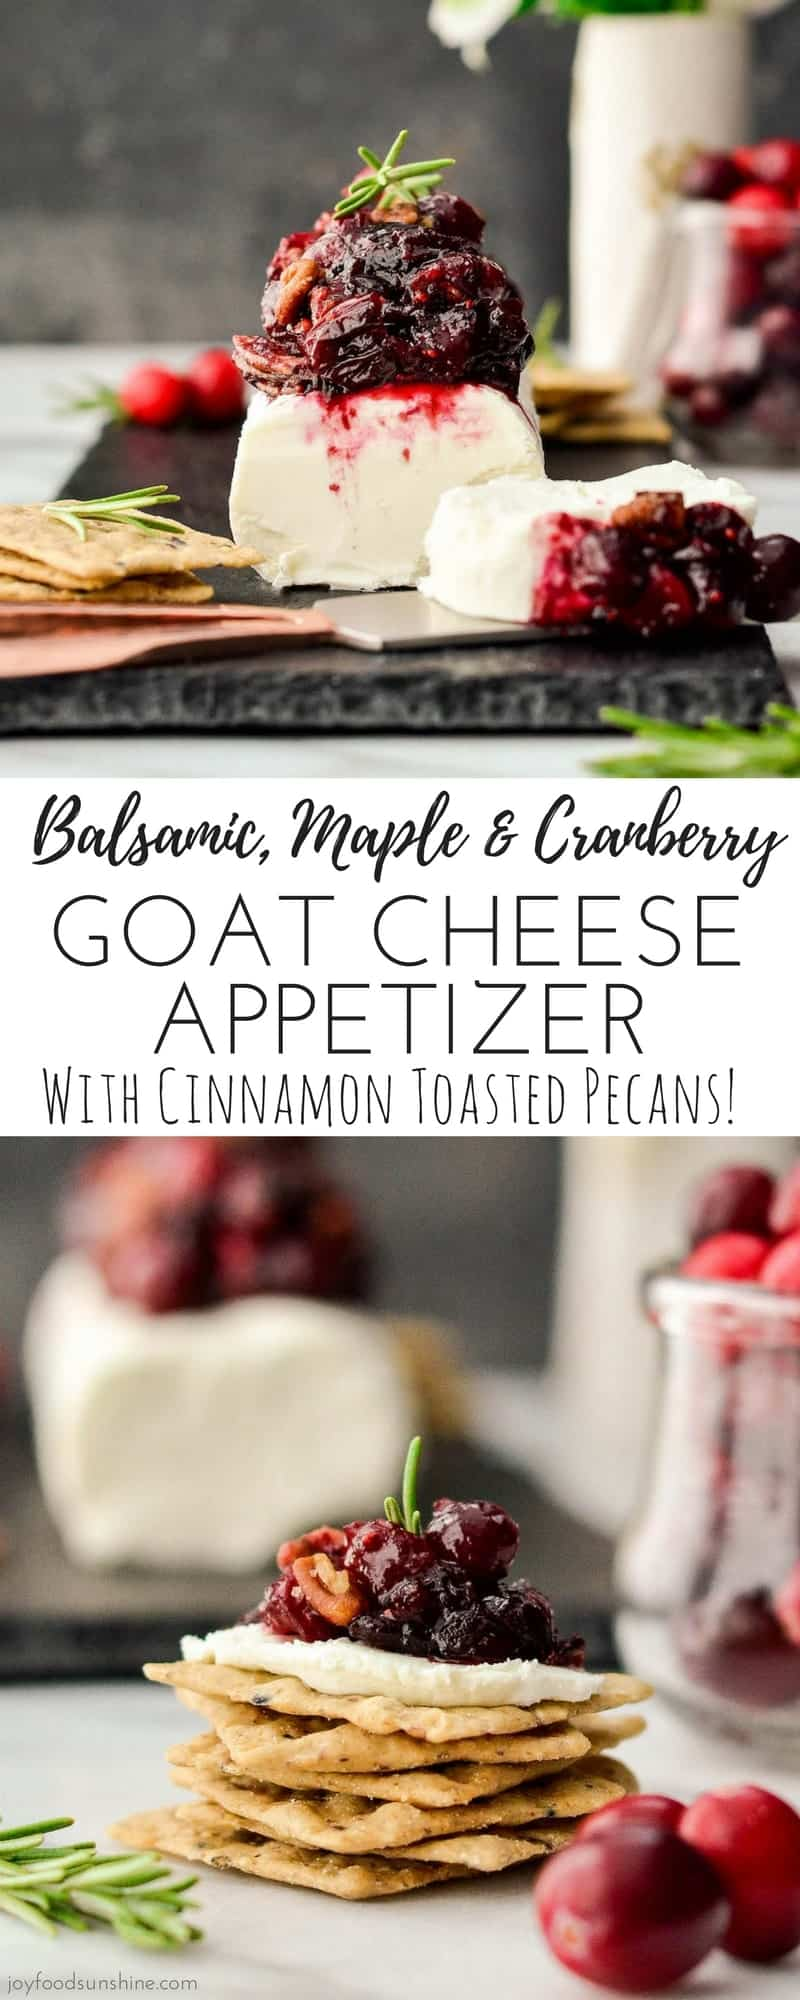 This Balsamic, Maple & Cranberry Goat Cheese Appetizer with Cinnamon Toasted Pecans is simple yet elegant! Perfect to serve at your holiday parties! It's ready in 20 minutes and is gluten-free! #appetizer #thanksgiving #christmas #cranberries #glutenfree